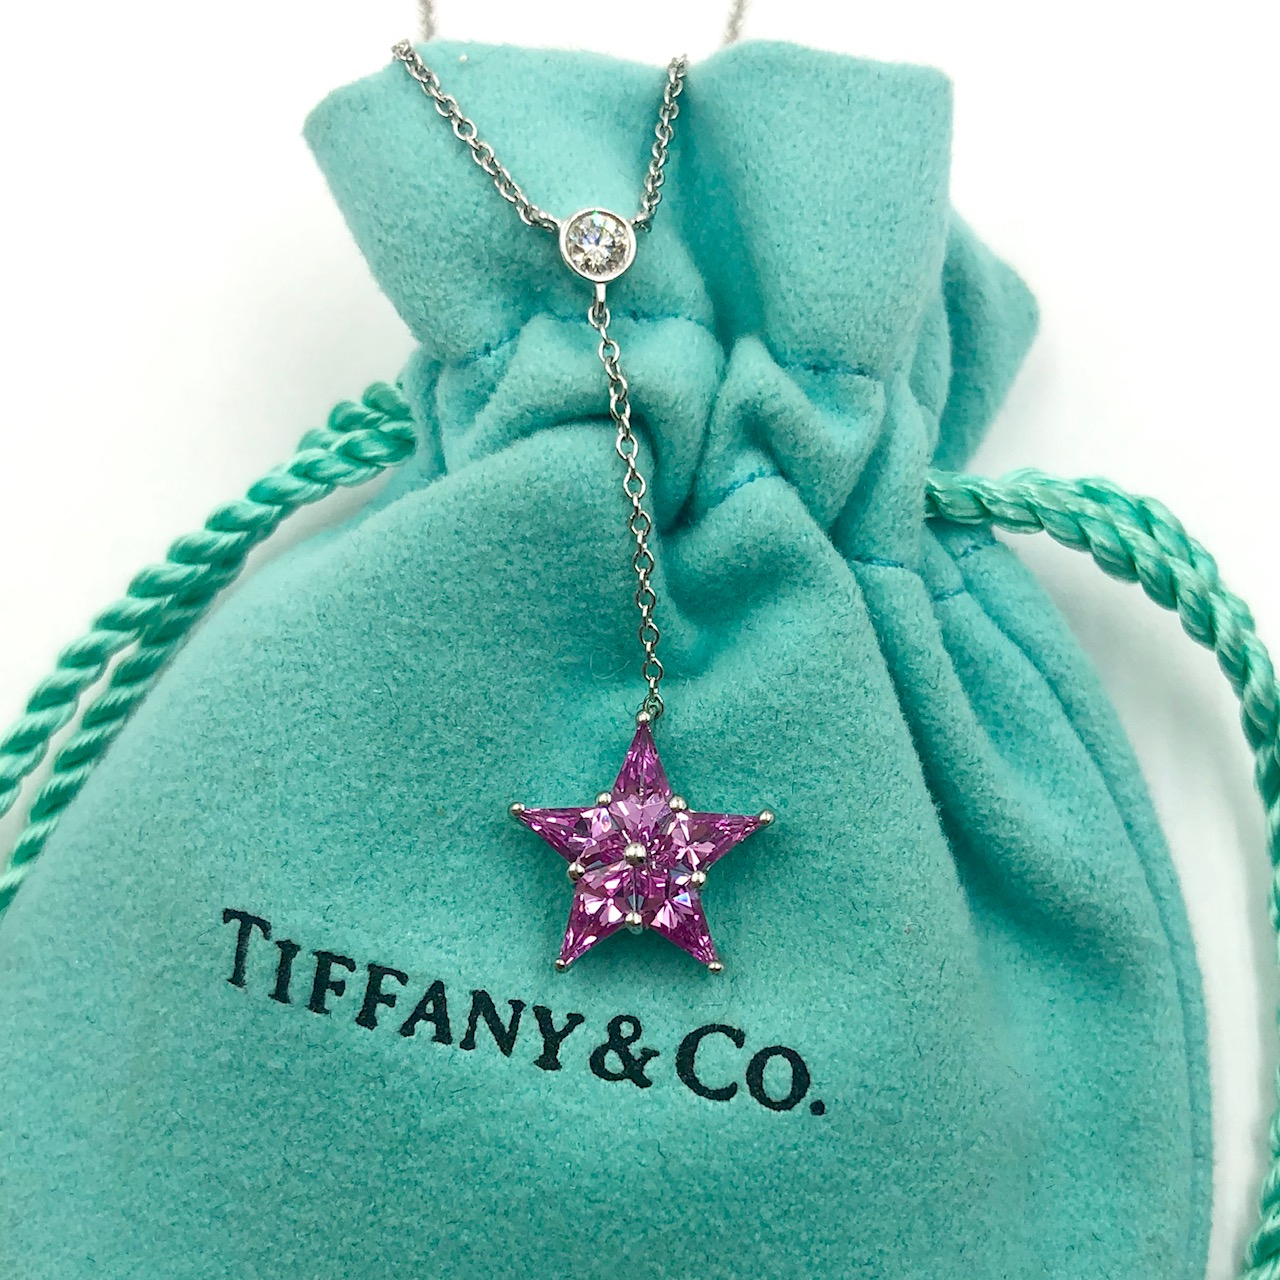 Tiffany .85 Cttw Pink Sapphire & Diamond Platinum Lariat Star Necklace In Latest Lariat Pink Sapphire And Diamond Necklaces (Gallery 6 of 25)